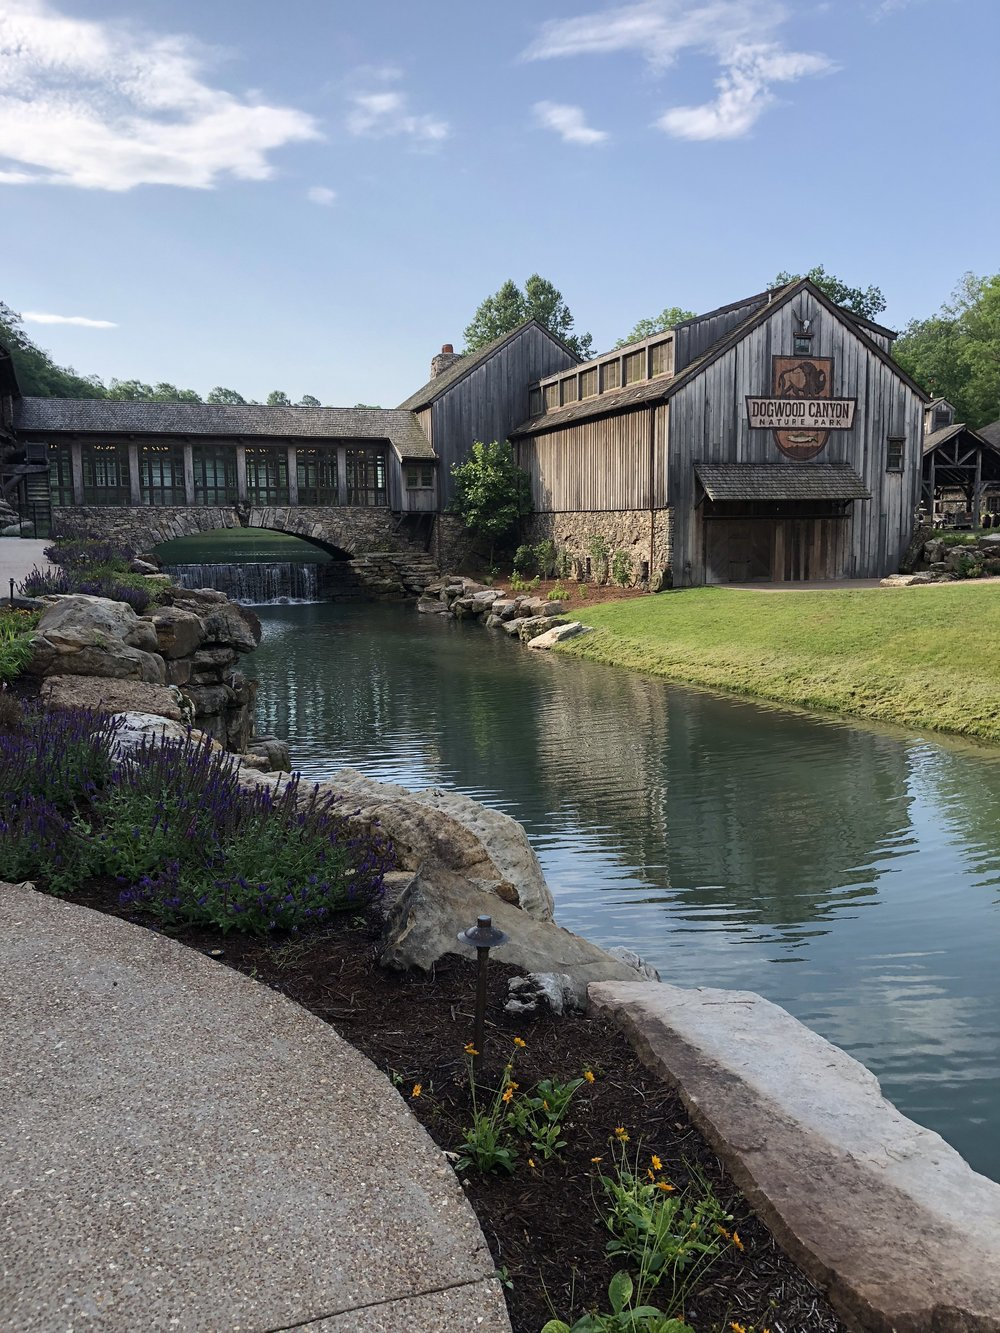 The new mill at Dogwood Canyon.